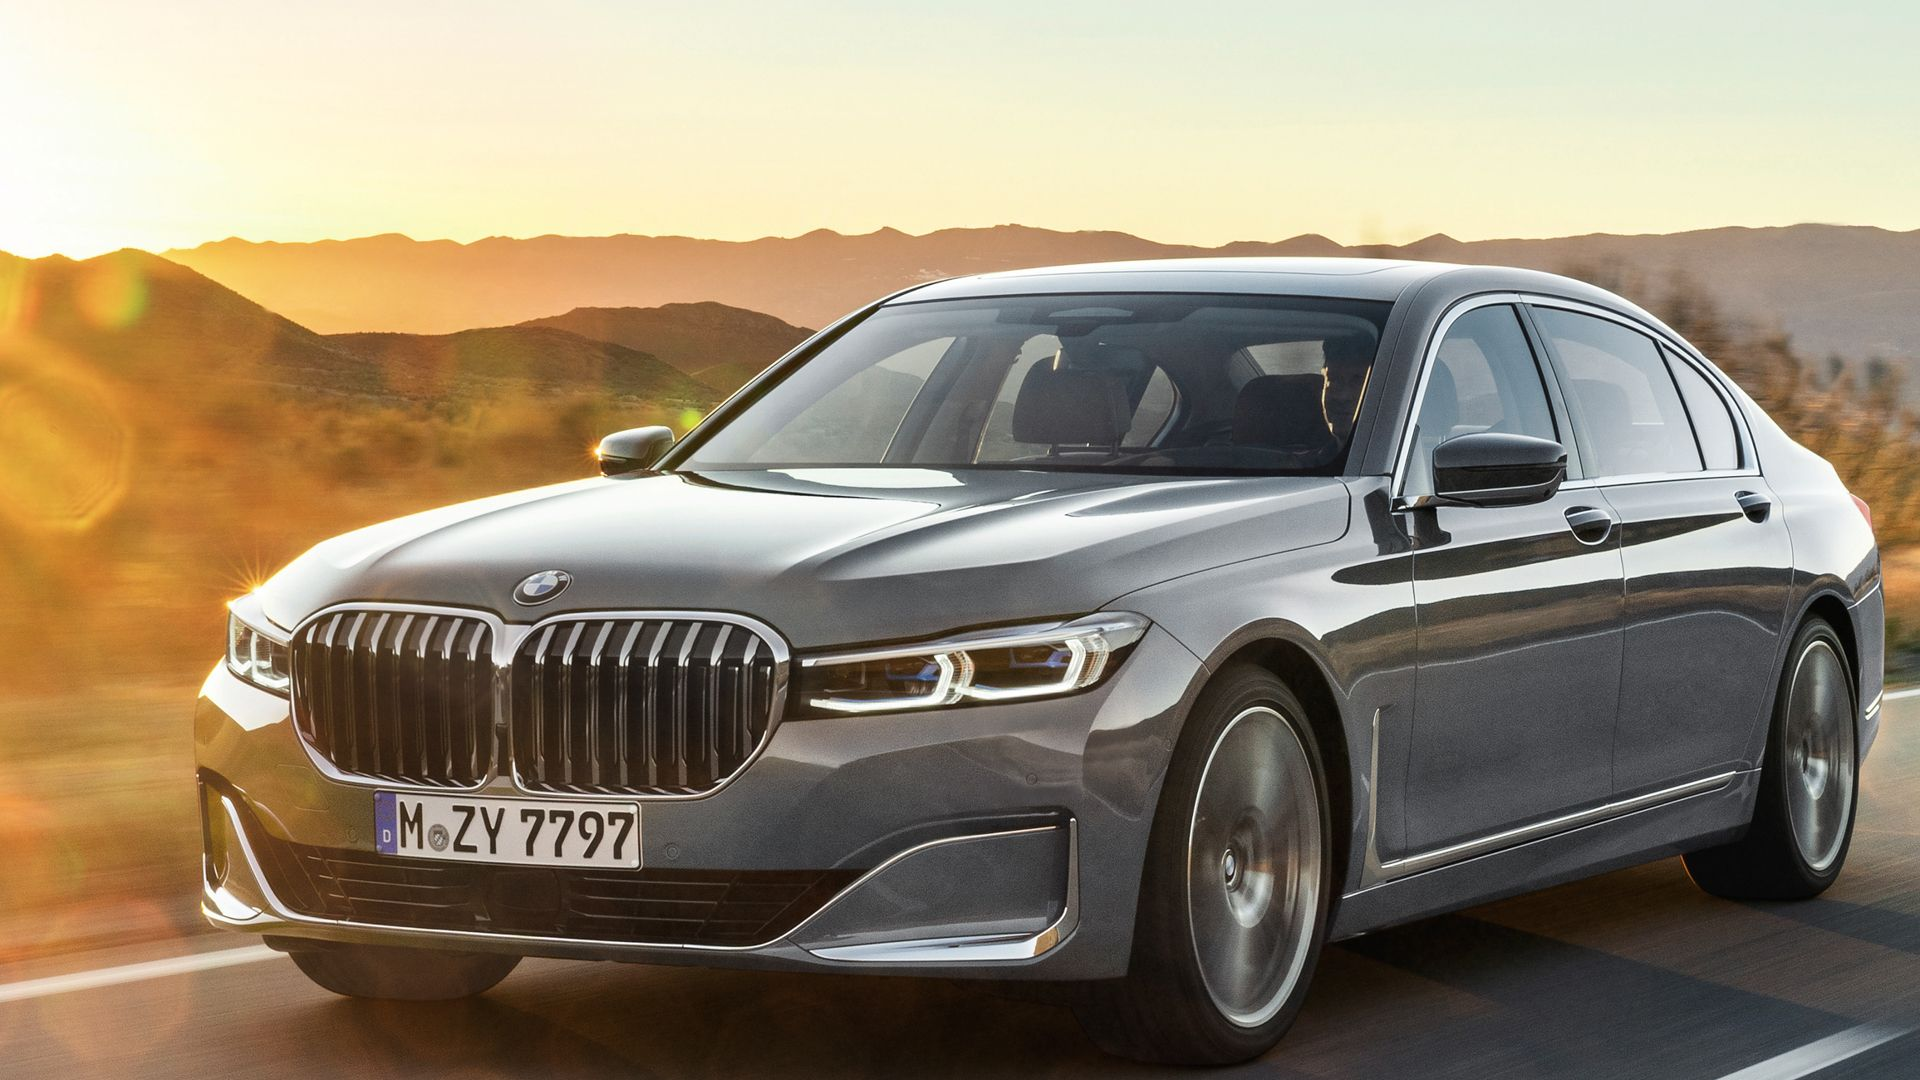 Photo Comparison Before And After Bmw 7 Series Lci With